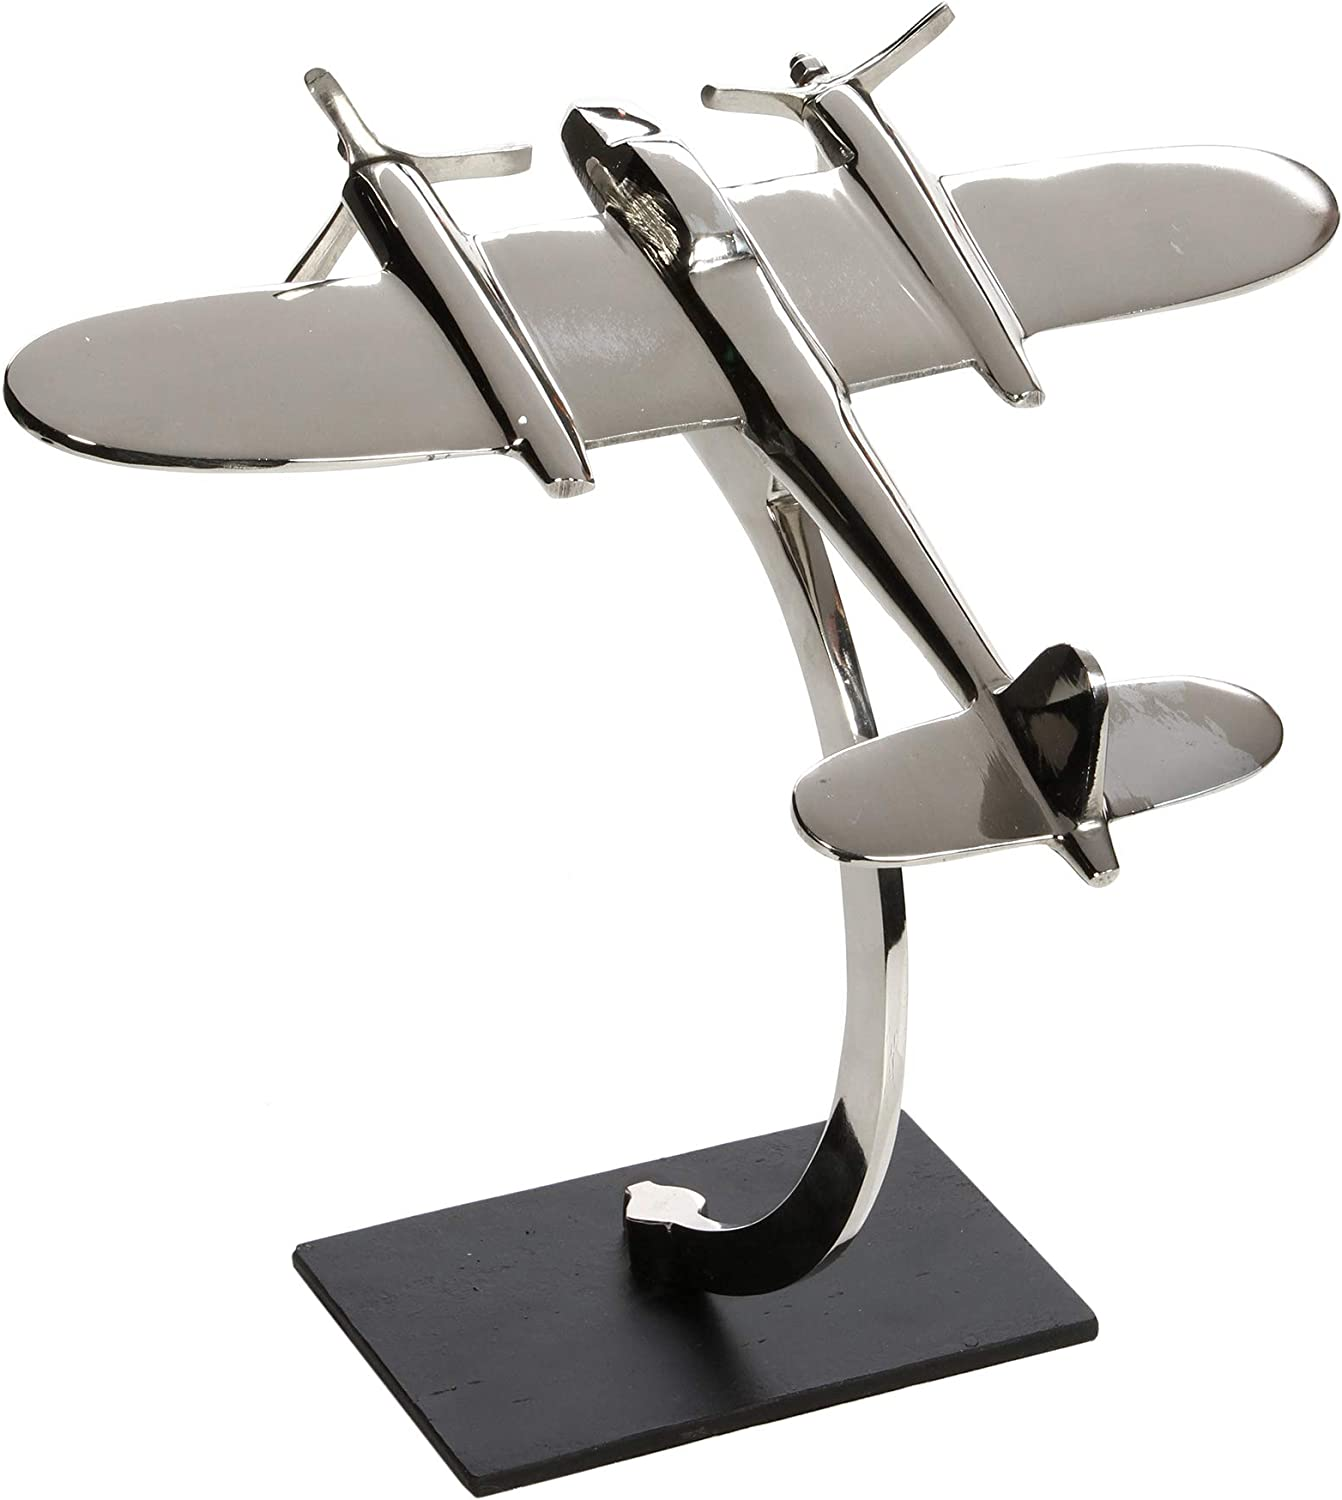 "Hosley 11.25"" High, Decorative Tabletop Sculpture Plane. Ideal Gift for Wedding, Home, Party Favor, Spa, Reiki, Meditation, Bathroom Settings O9"